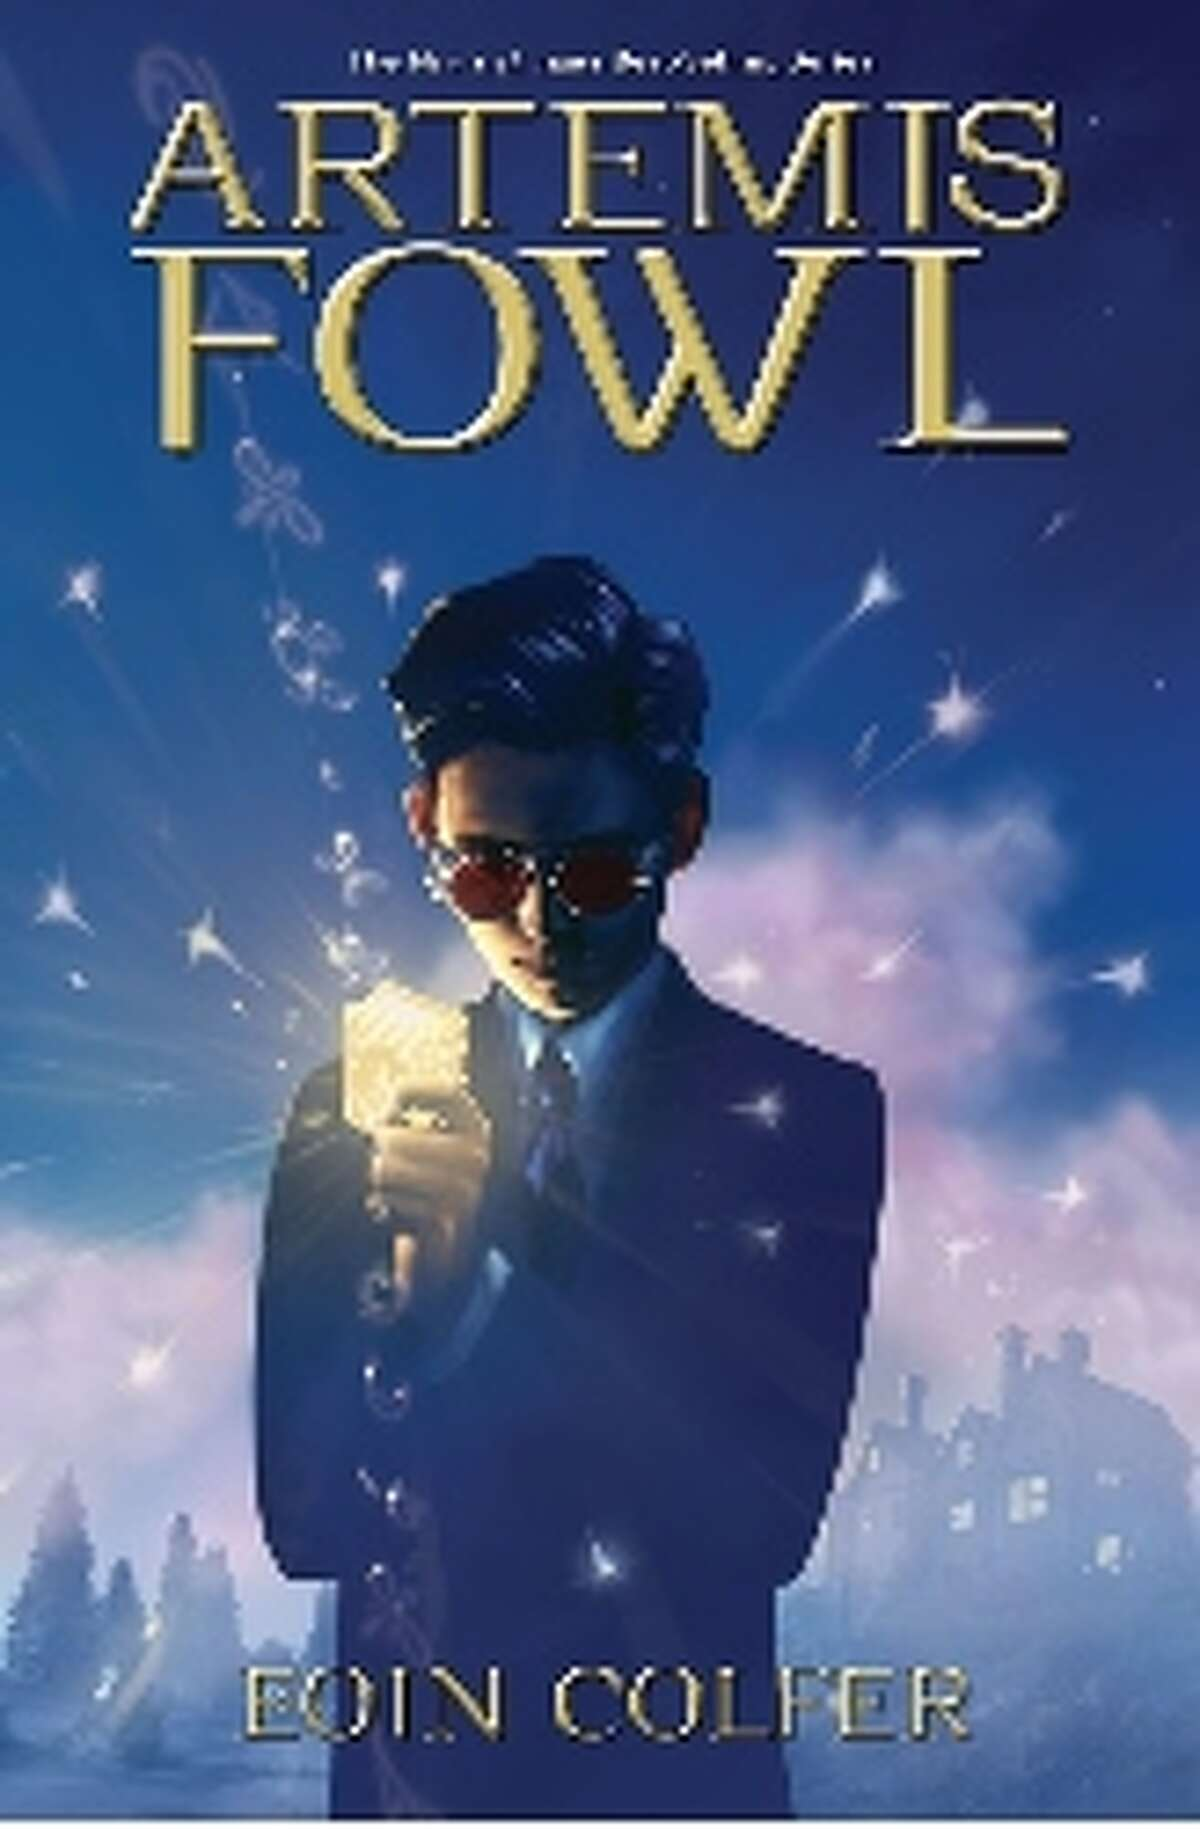 """Artemis FowlThe Artemis Fowl books, written by Eoin Colfer and published between 2001 and 2012, tell the story of a young, genius master criminal named (of course) Artemis Fowl and his interactions with a secret community of fairies.The film adaptation is directed by Kenneth Branagh (""""Murder on the Orient Express,"""" """"Thor"""") and stars Colin Farrel, Judi Dench, and Ferdia Shaw. It will debut Jun 12, 2020 on Disney+, but in the meantime you can buy the first book, """"Artemis Fowl,"""" on Kindle, paperback and audio on Amazon."""